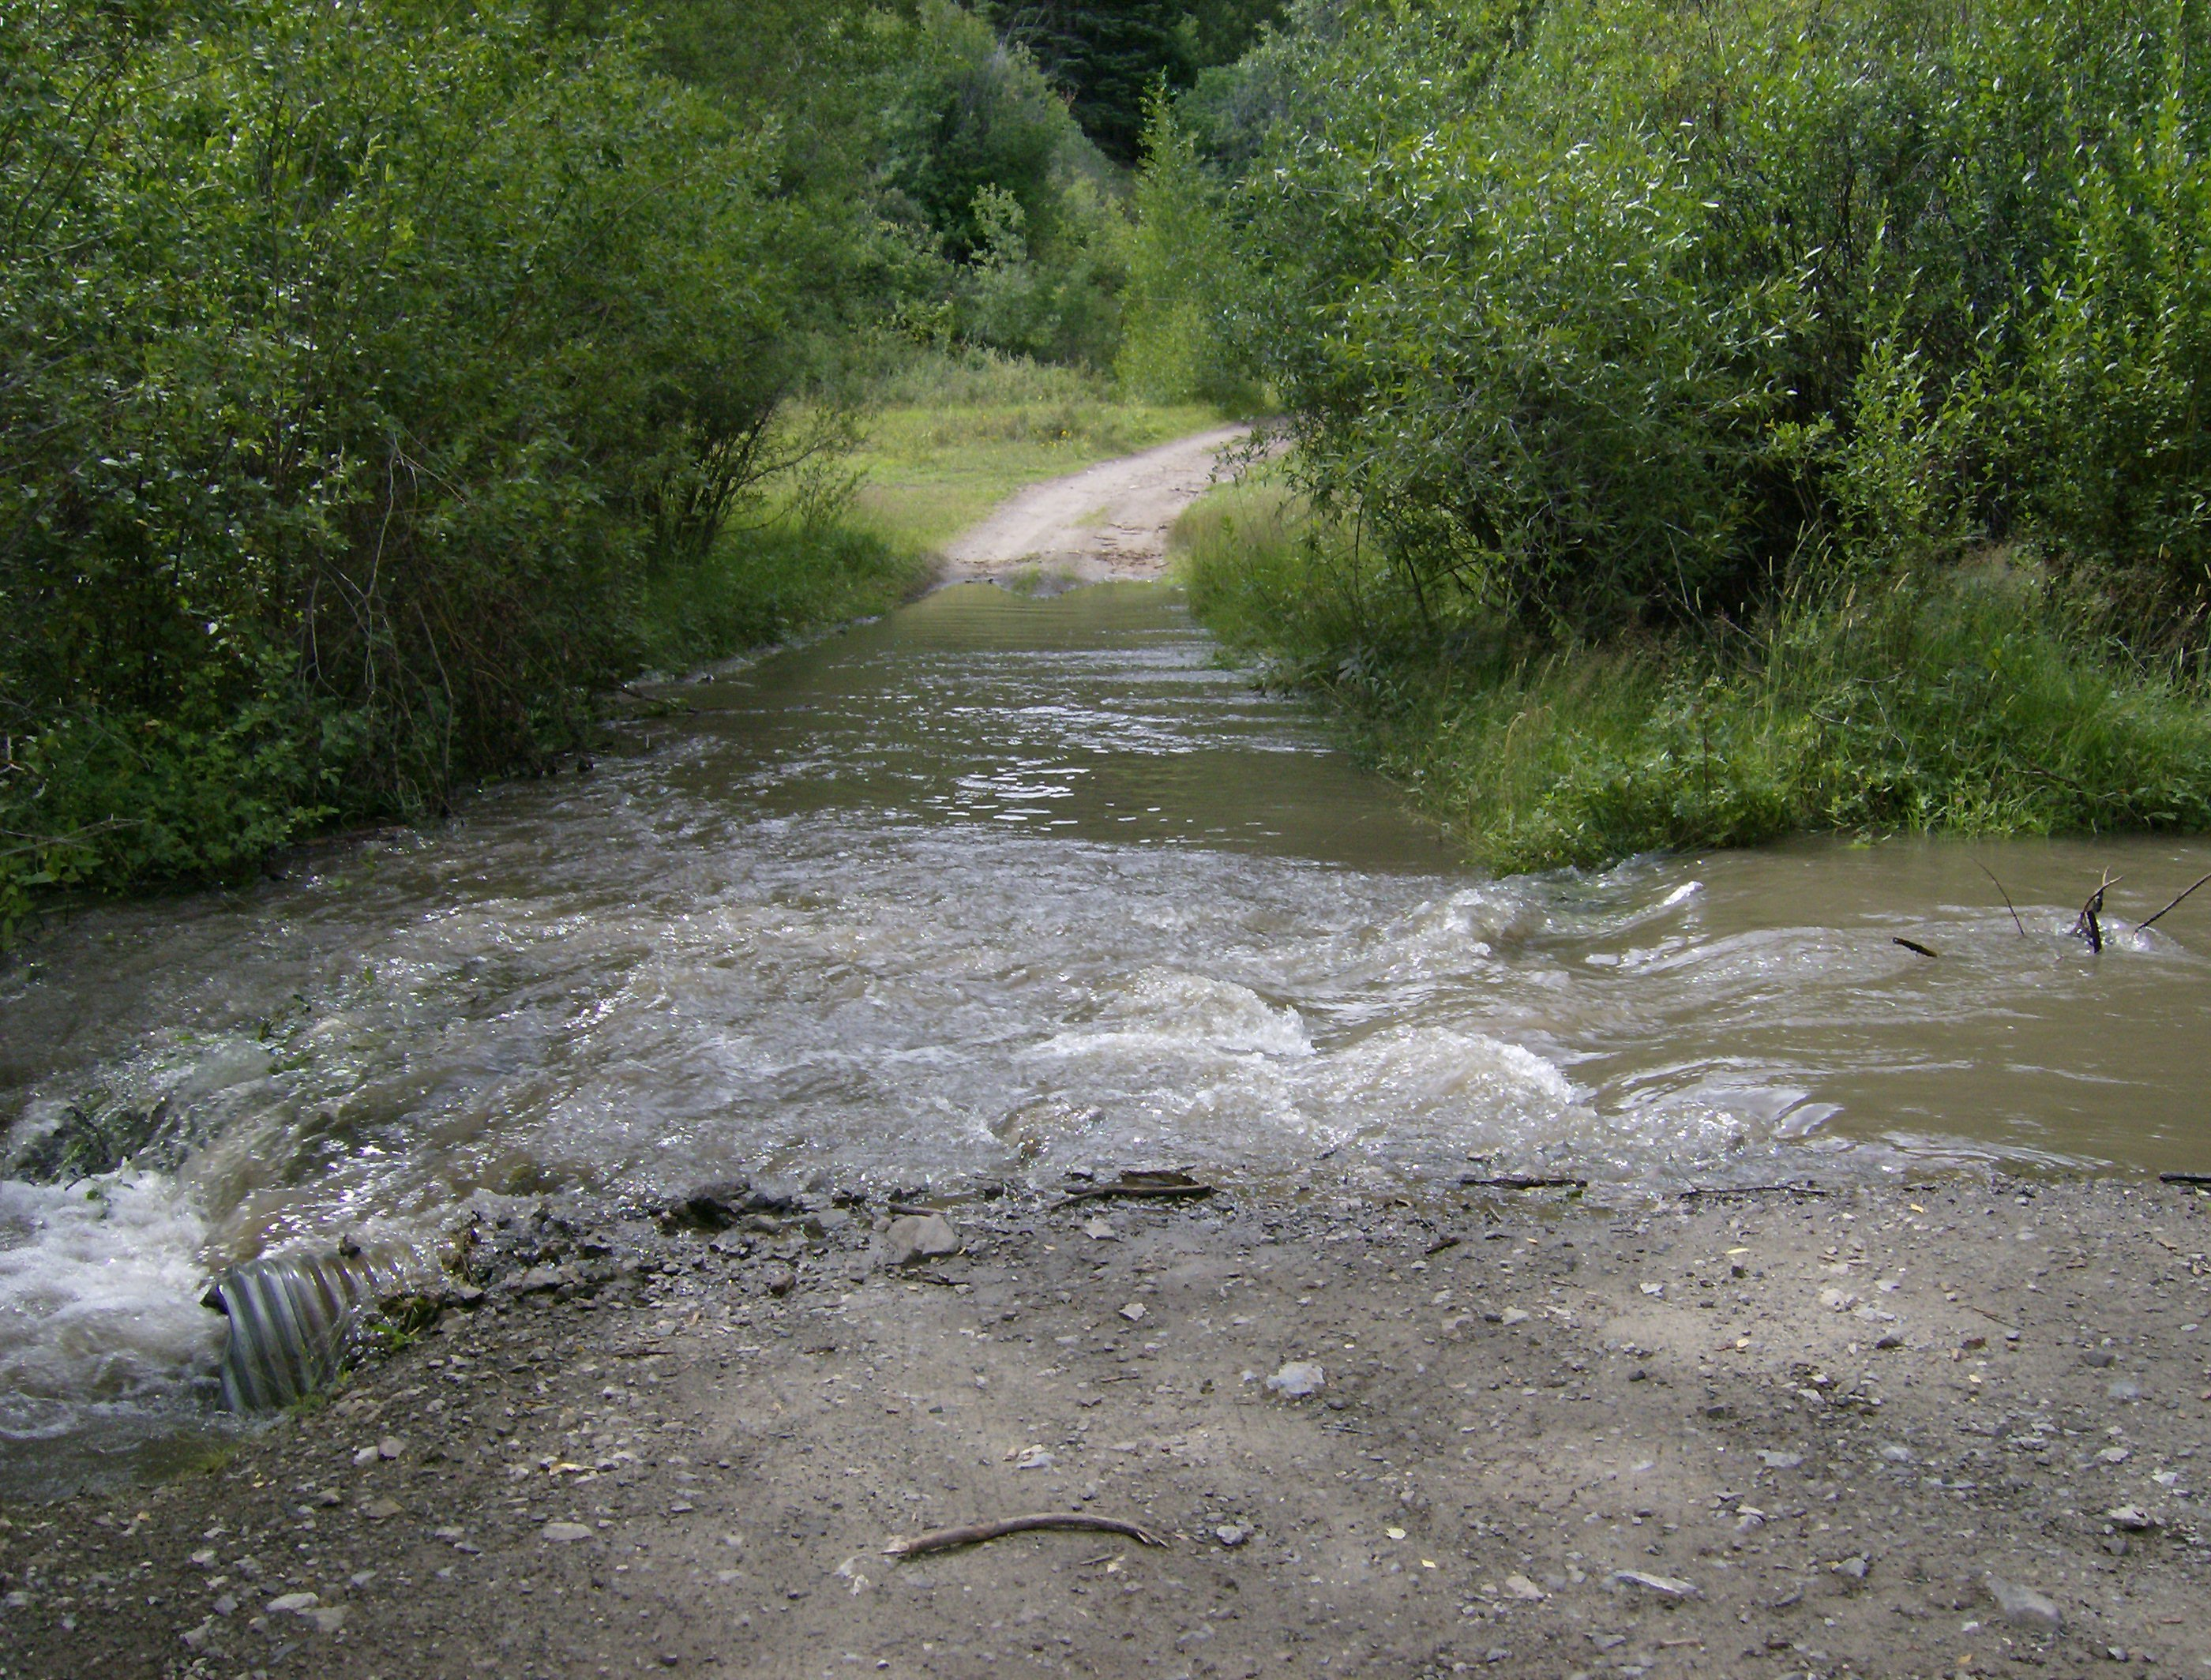 The flooded road